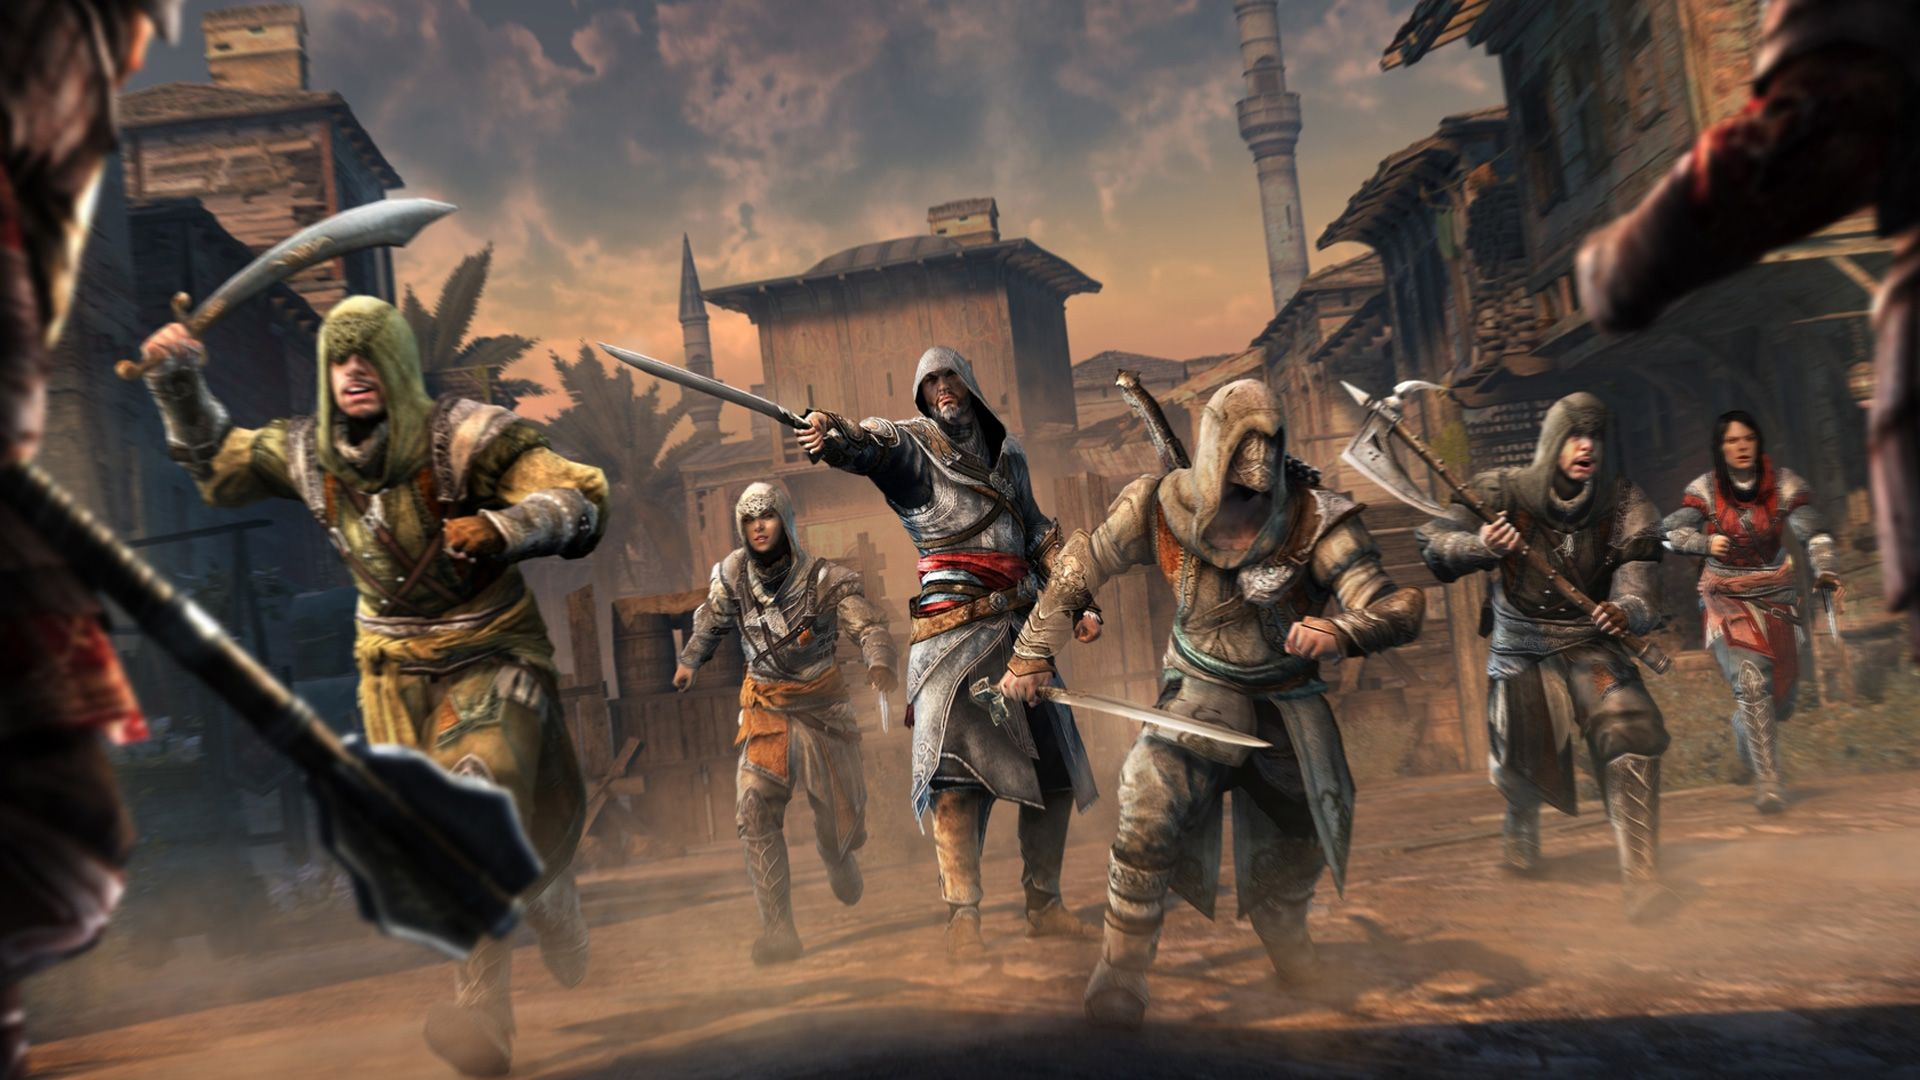 Assassins Creed Hd Wallpapers 1080p Assassins Creed